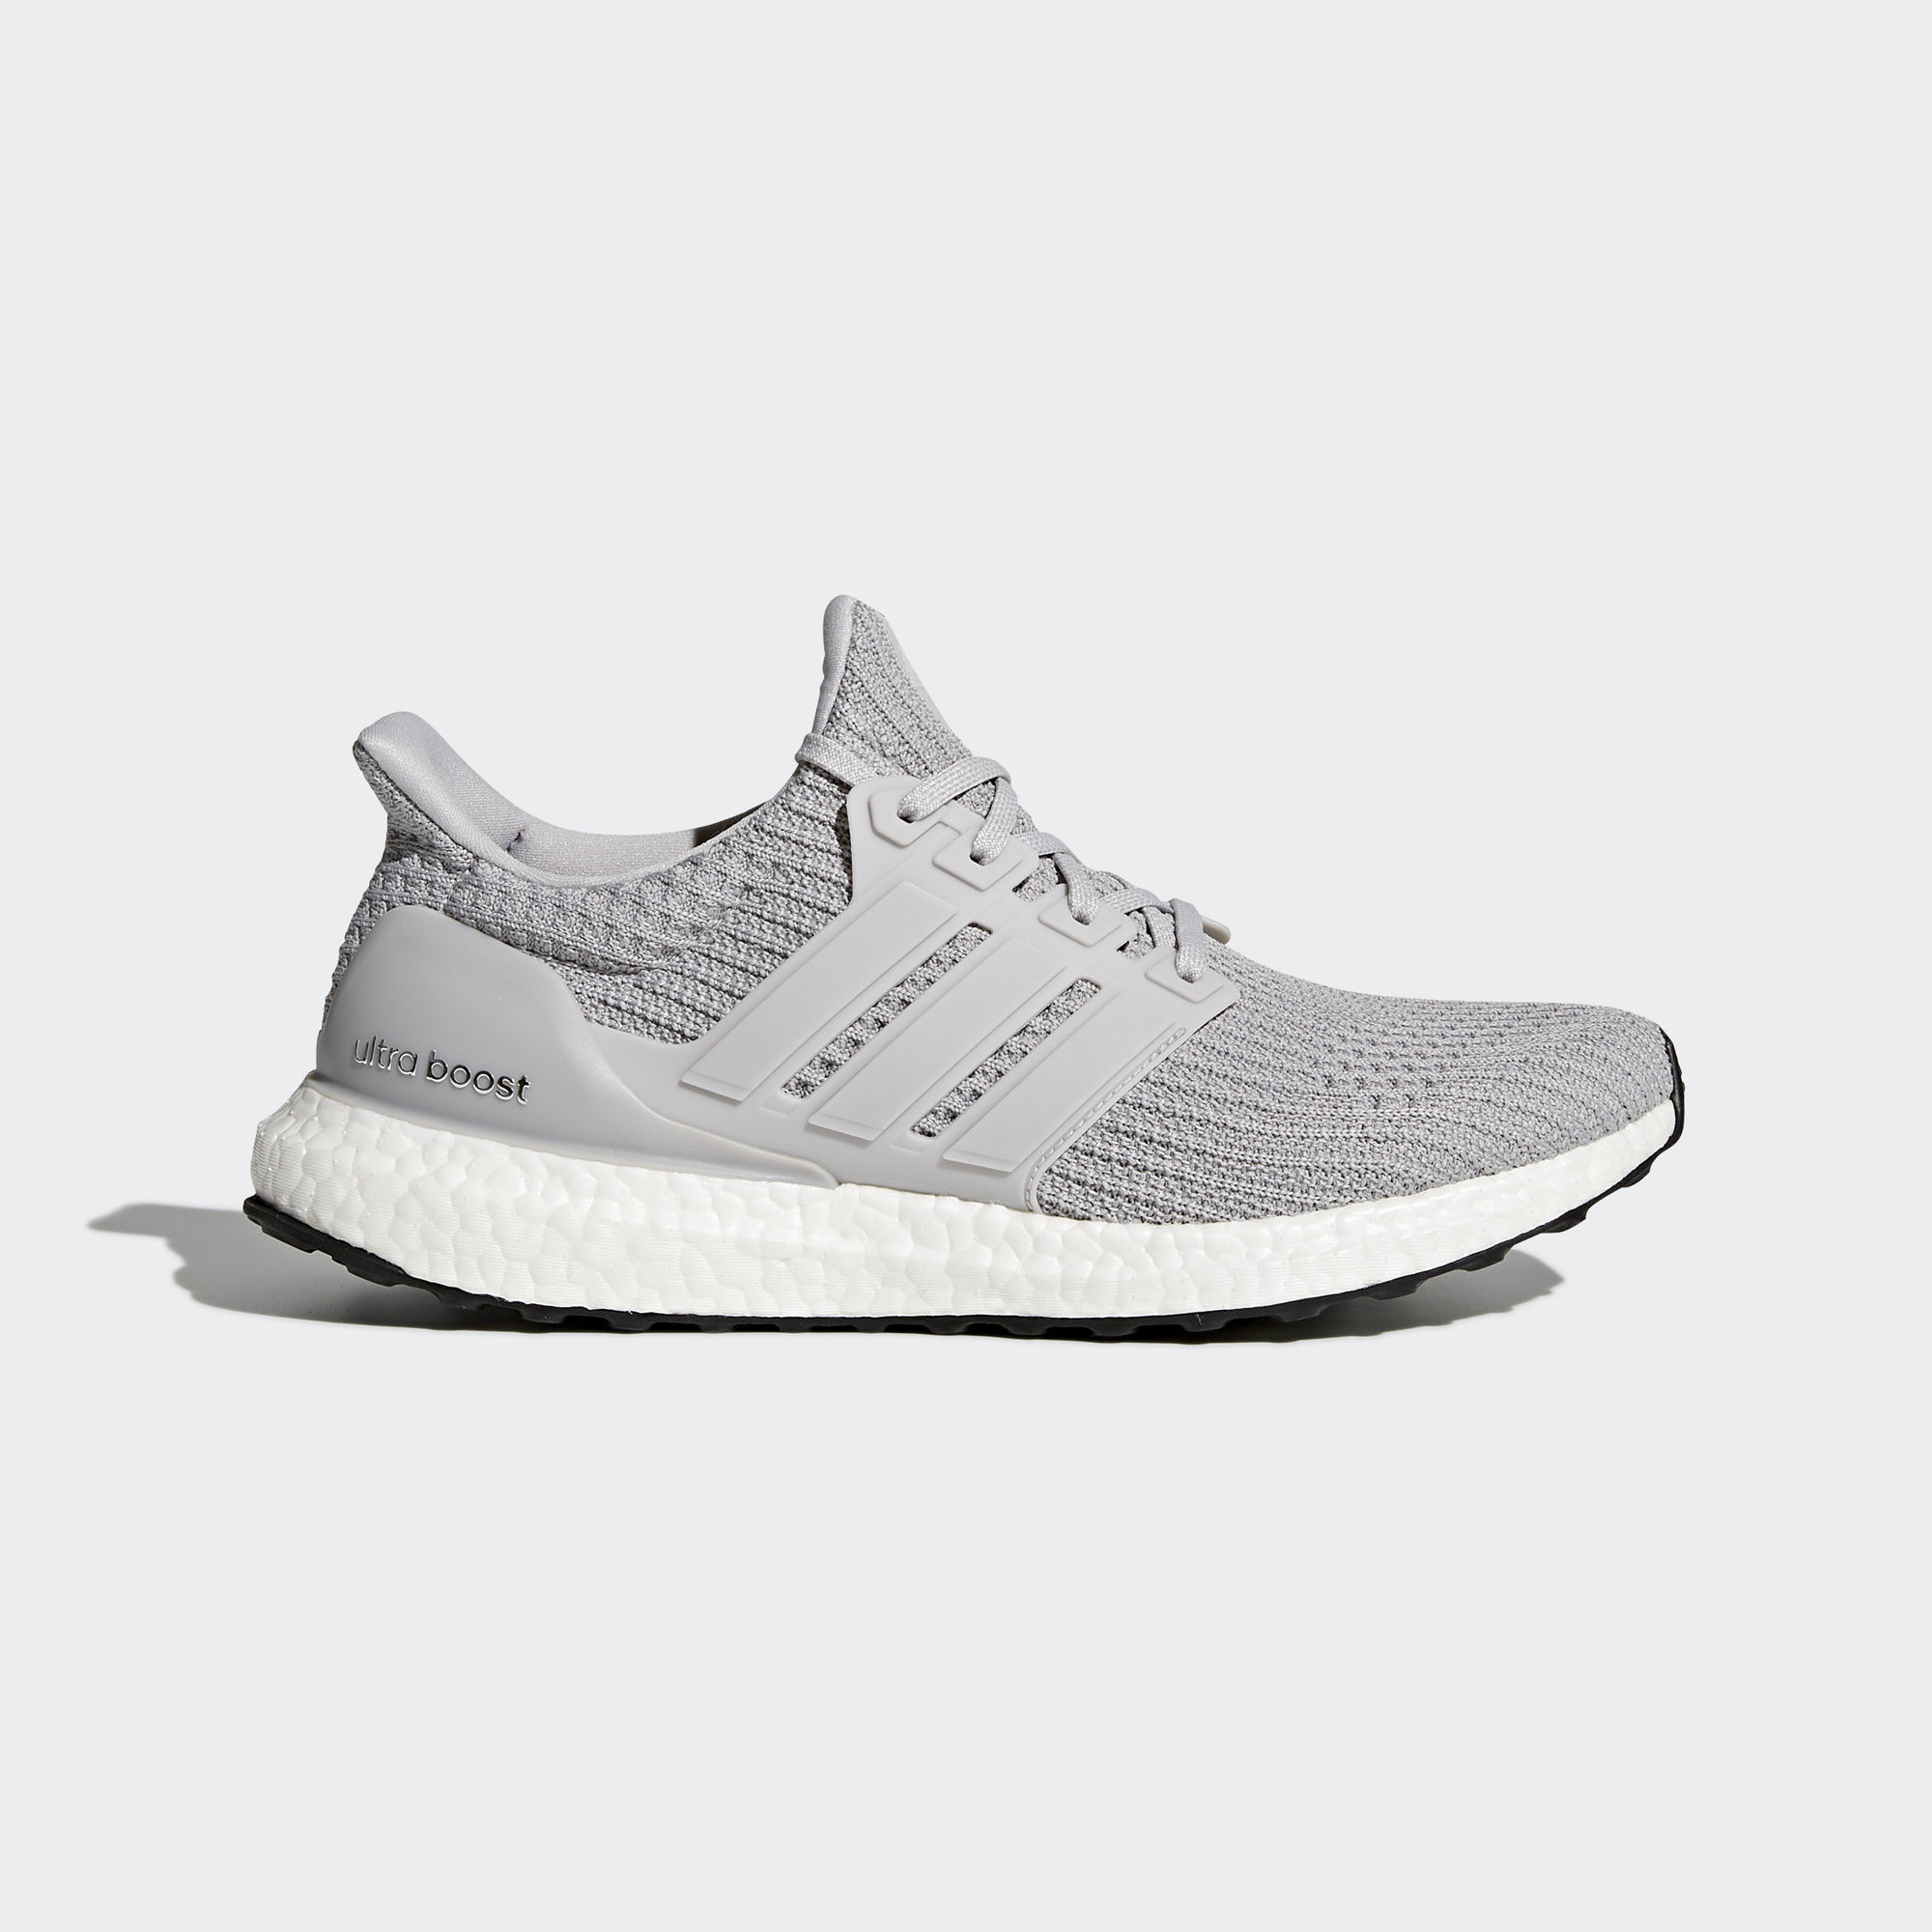 finest selection fb7f6 024b1 Adidas Boost   Buy cheap Adidas shoes online - Clvyall.com